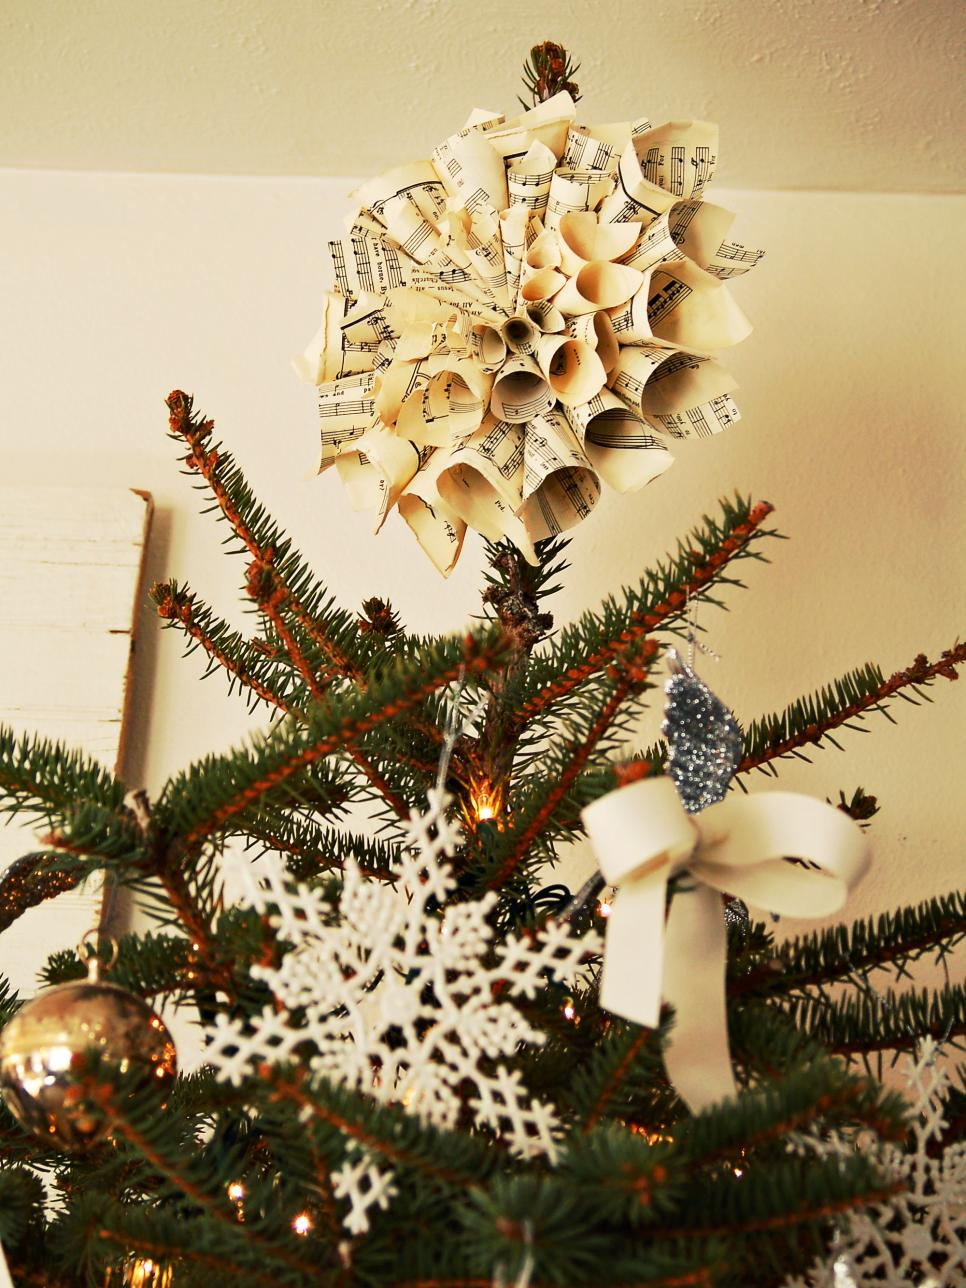 Handmade tree topper made from old music sheets